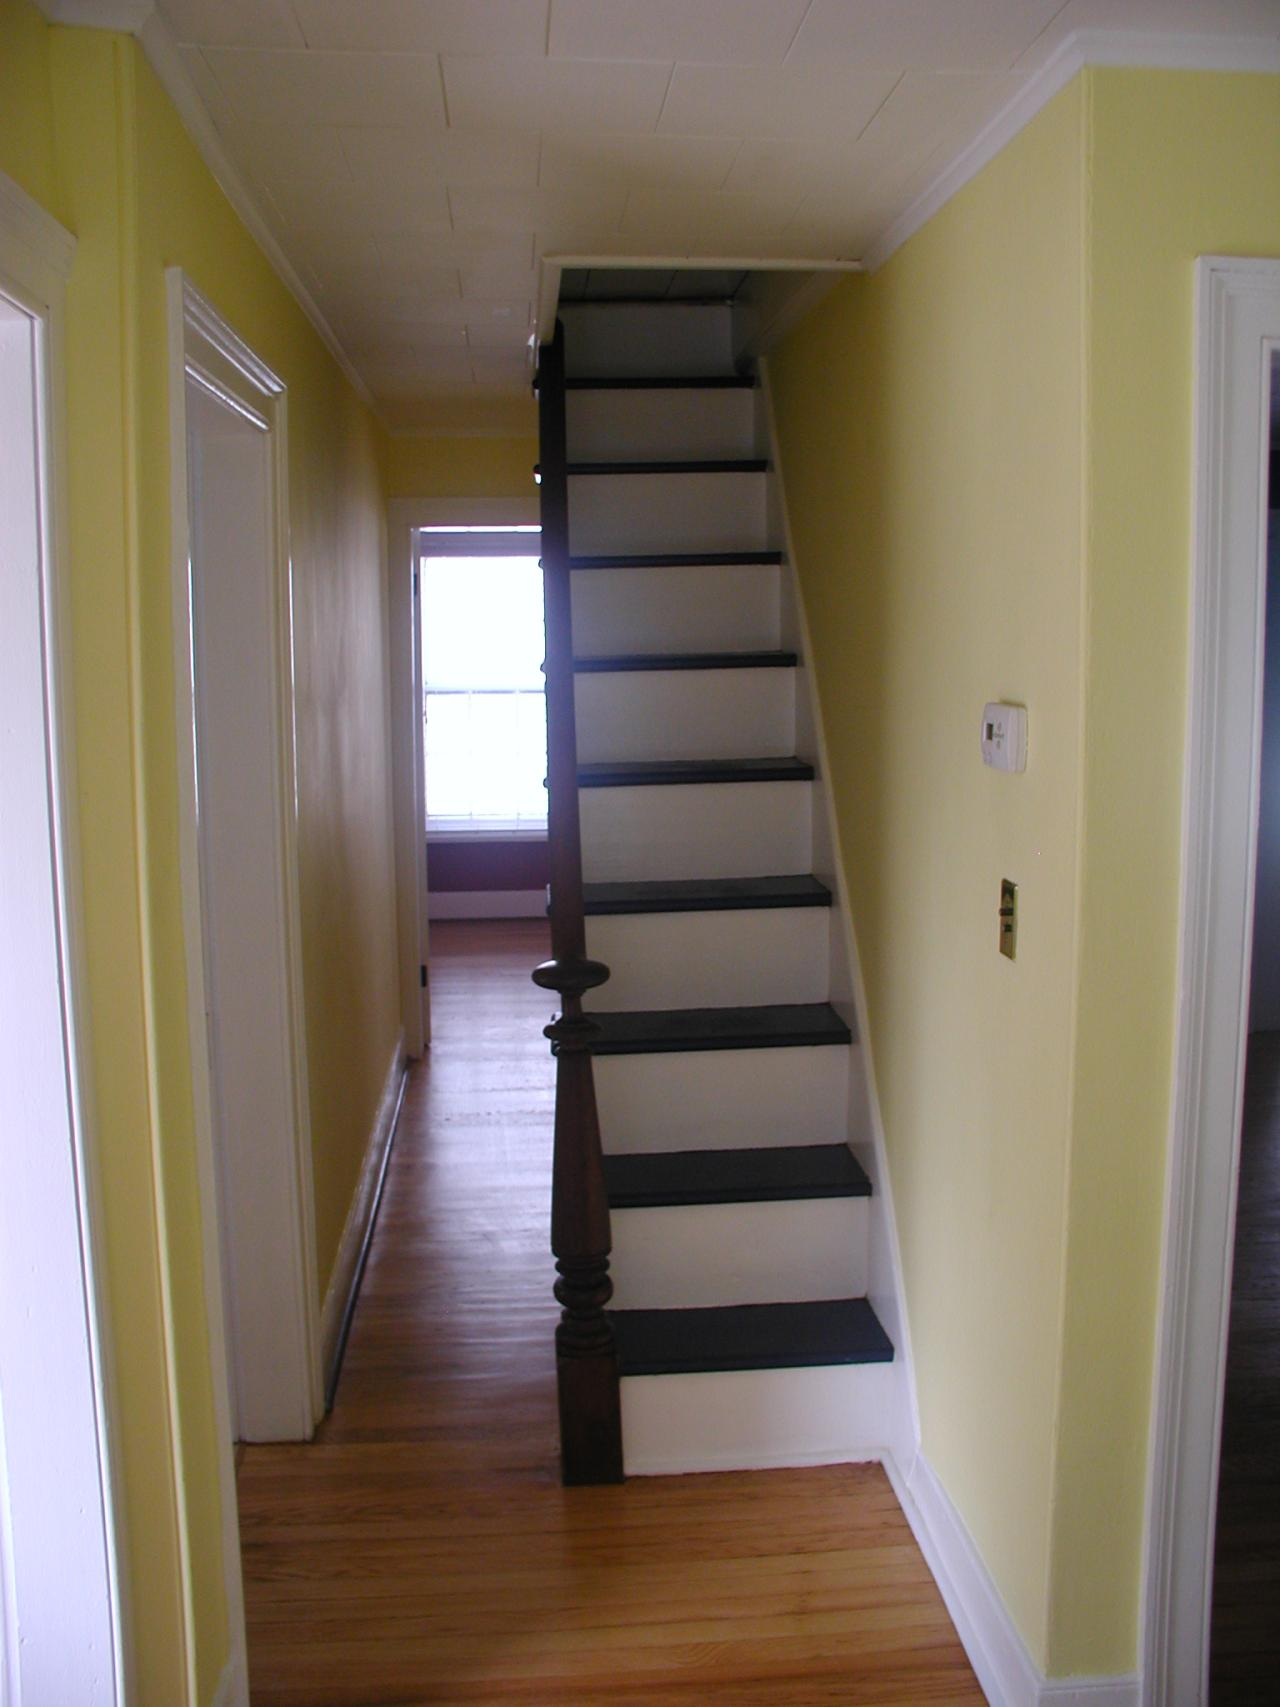 Automatic Attic Stairs Latest Door Stair Design pertaining to sizing 1280 X 1707